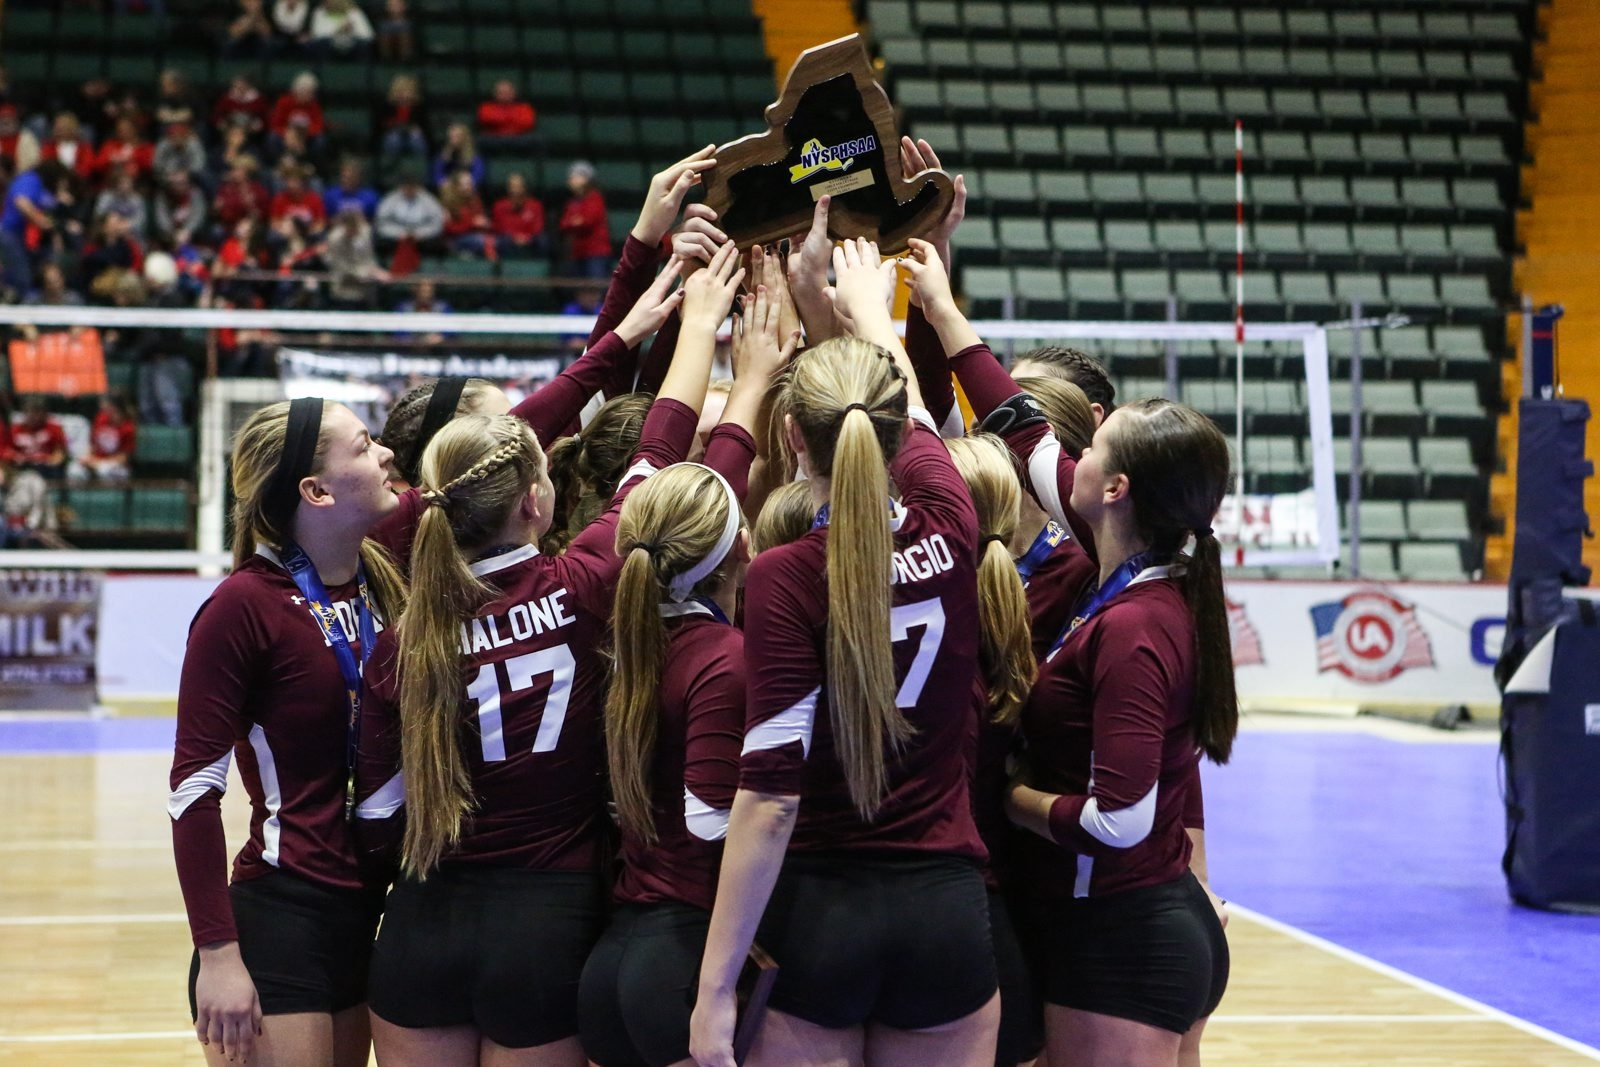 The Eden girls volleyball team lift the Class C championship class after defeated Millbrook to win the NYSPHSAA title in Glens Falls.